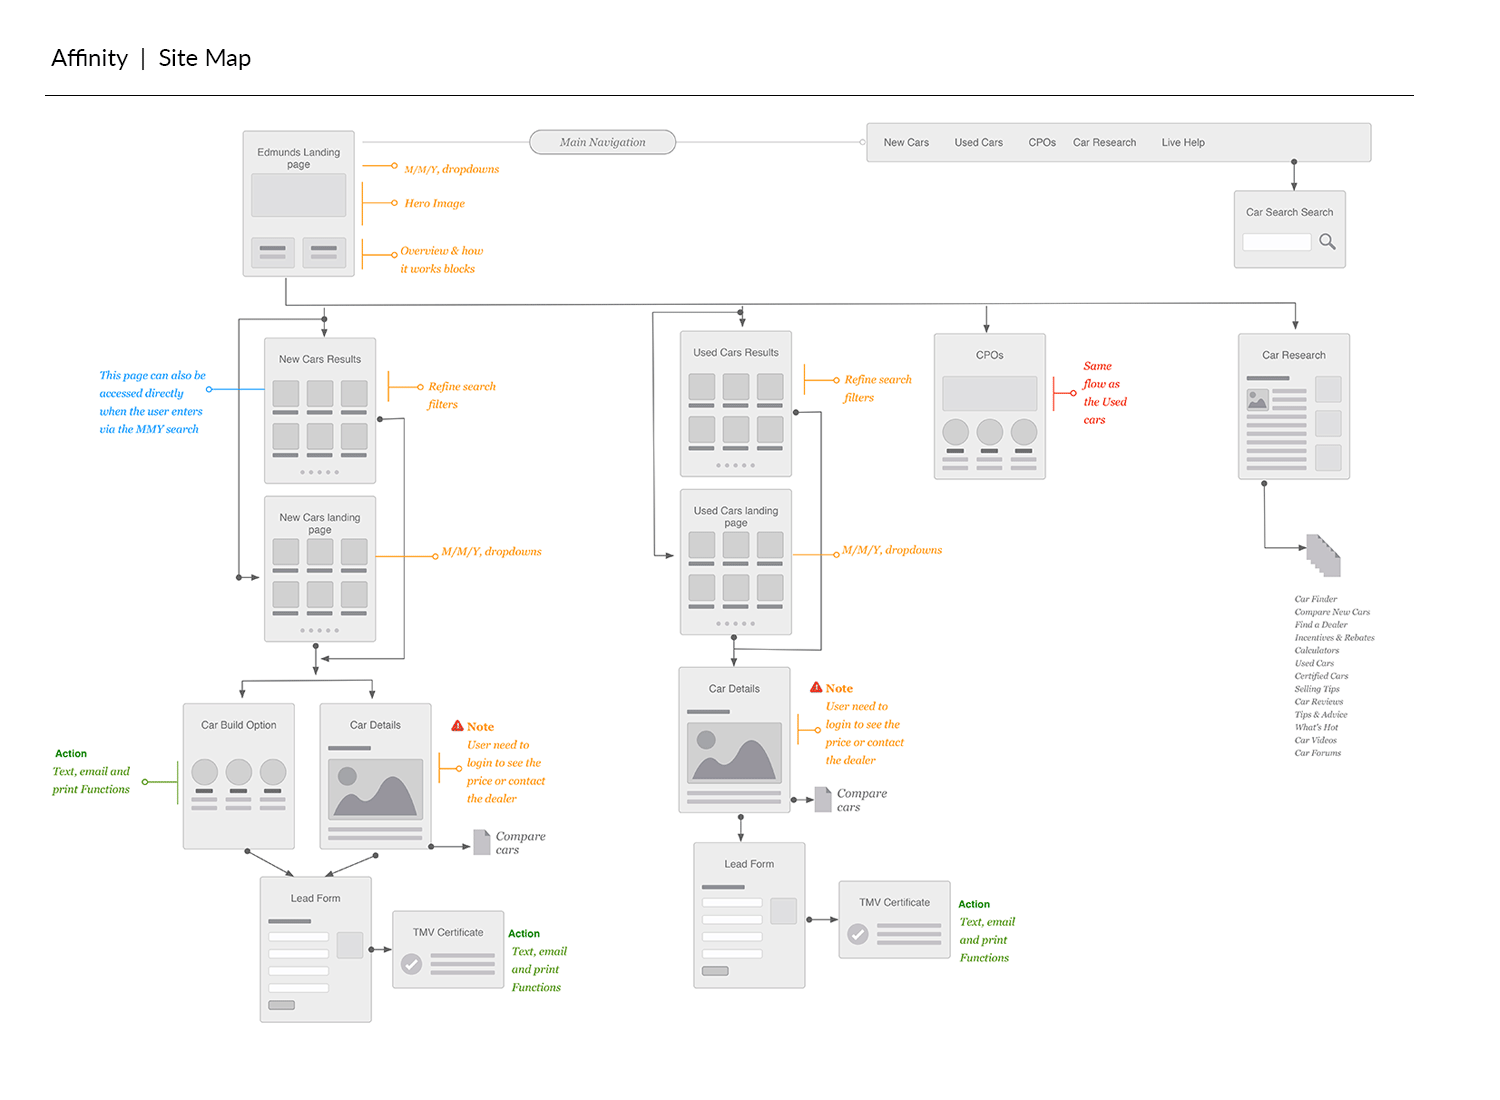 Affinity_flowchart.png